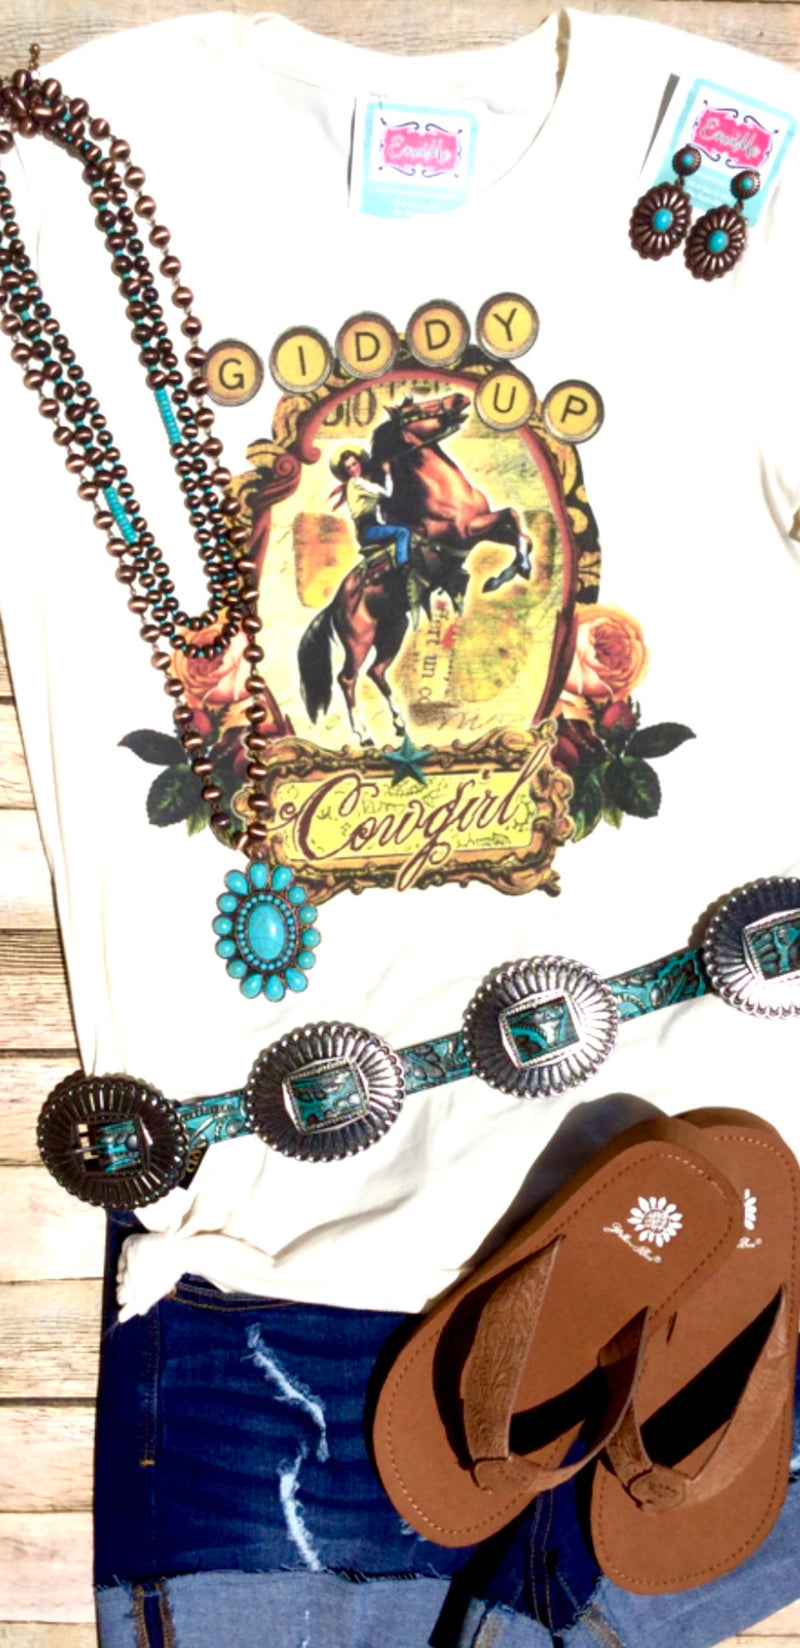 Giddy Up Cowgirl Retro Tee